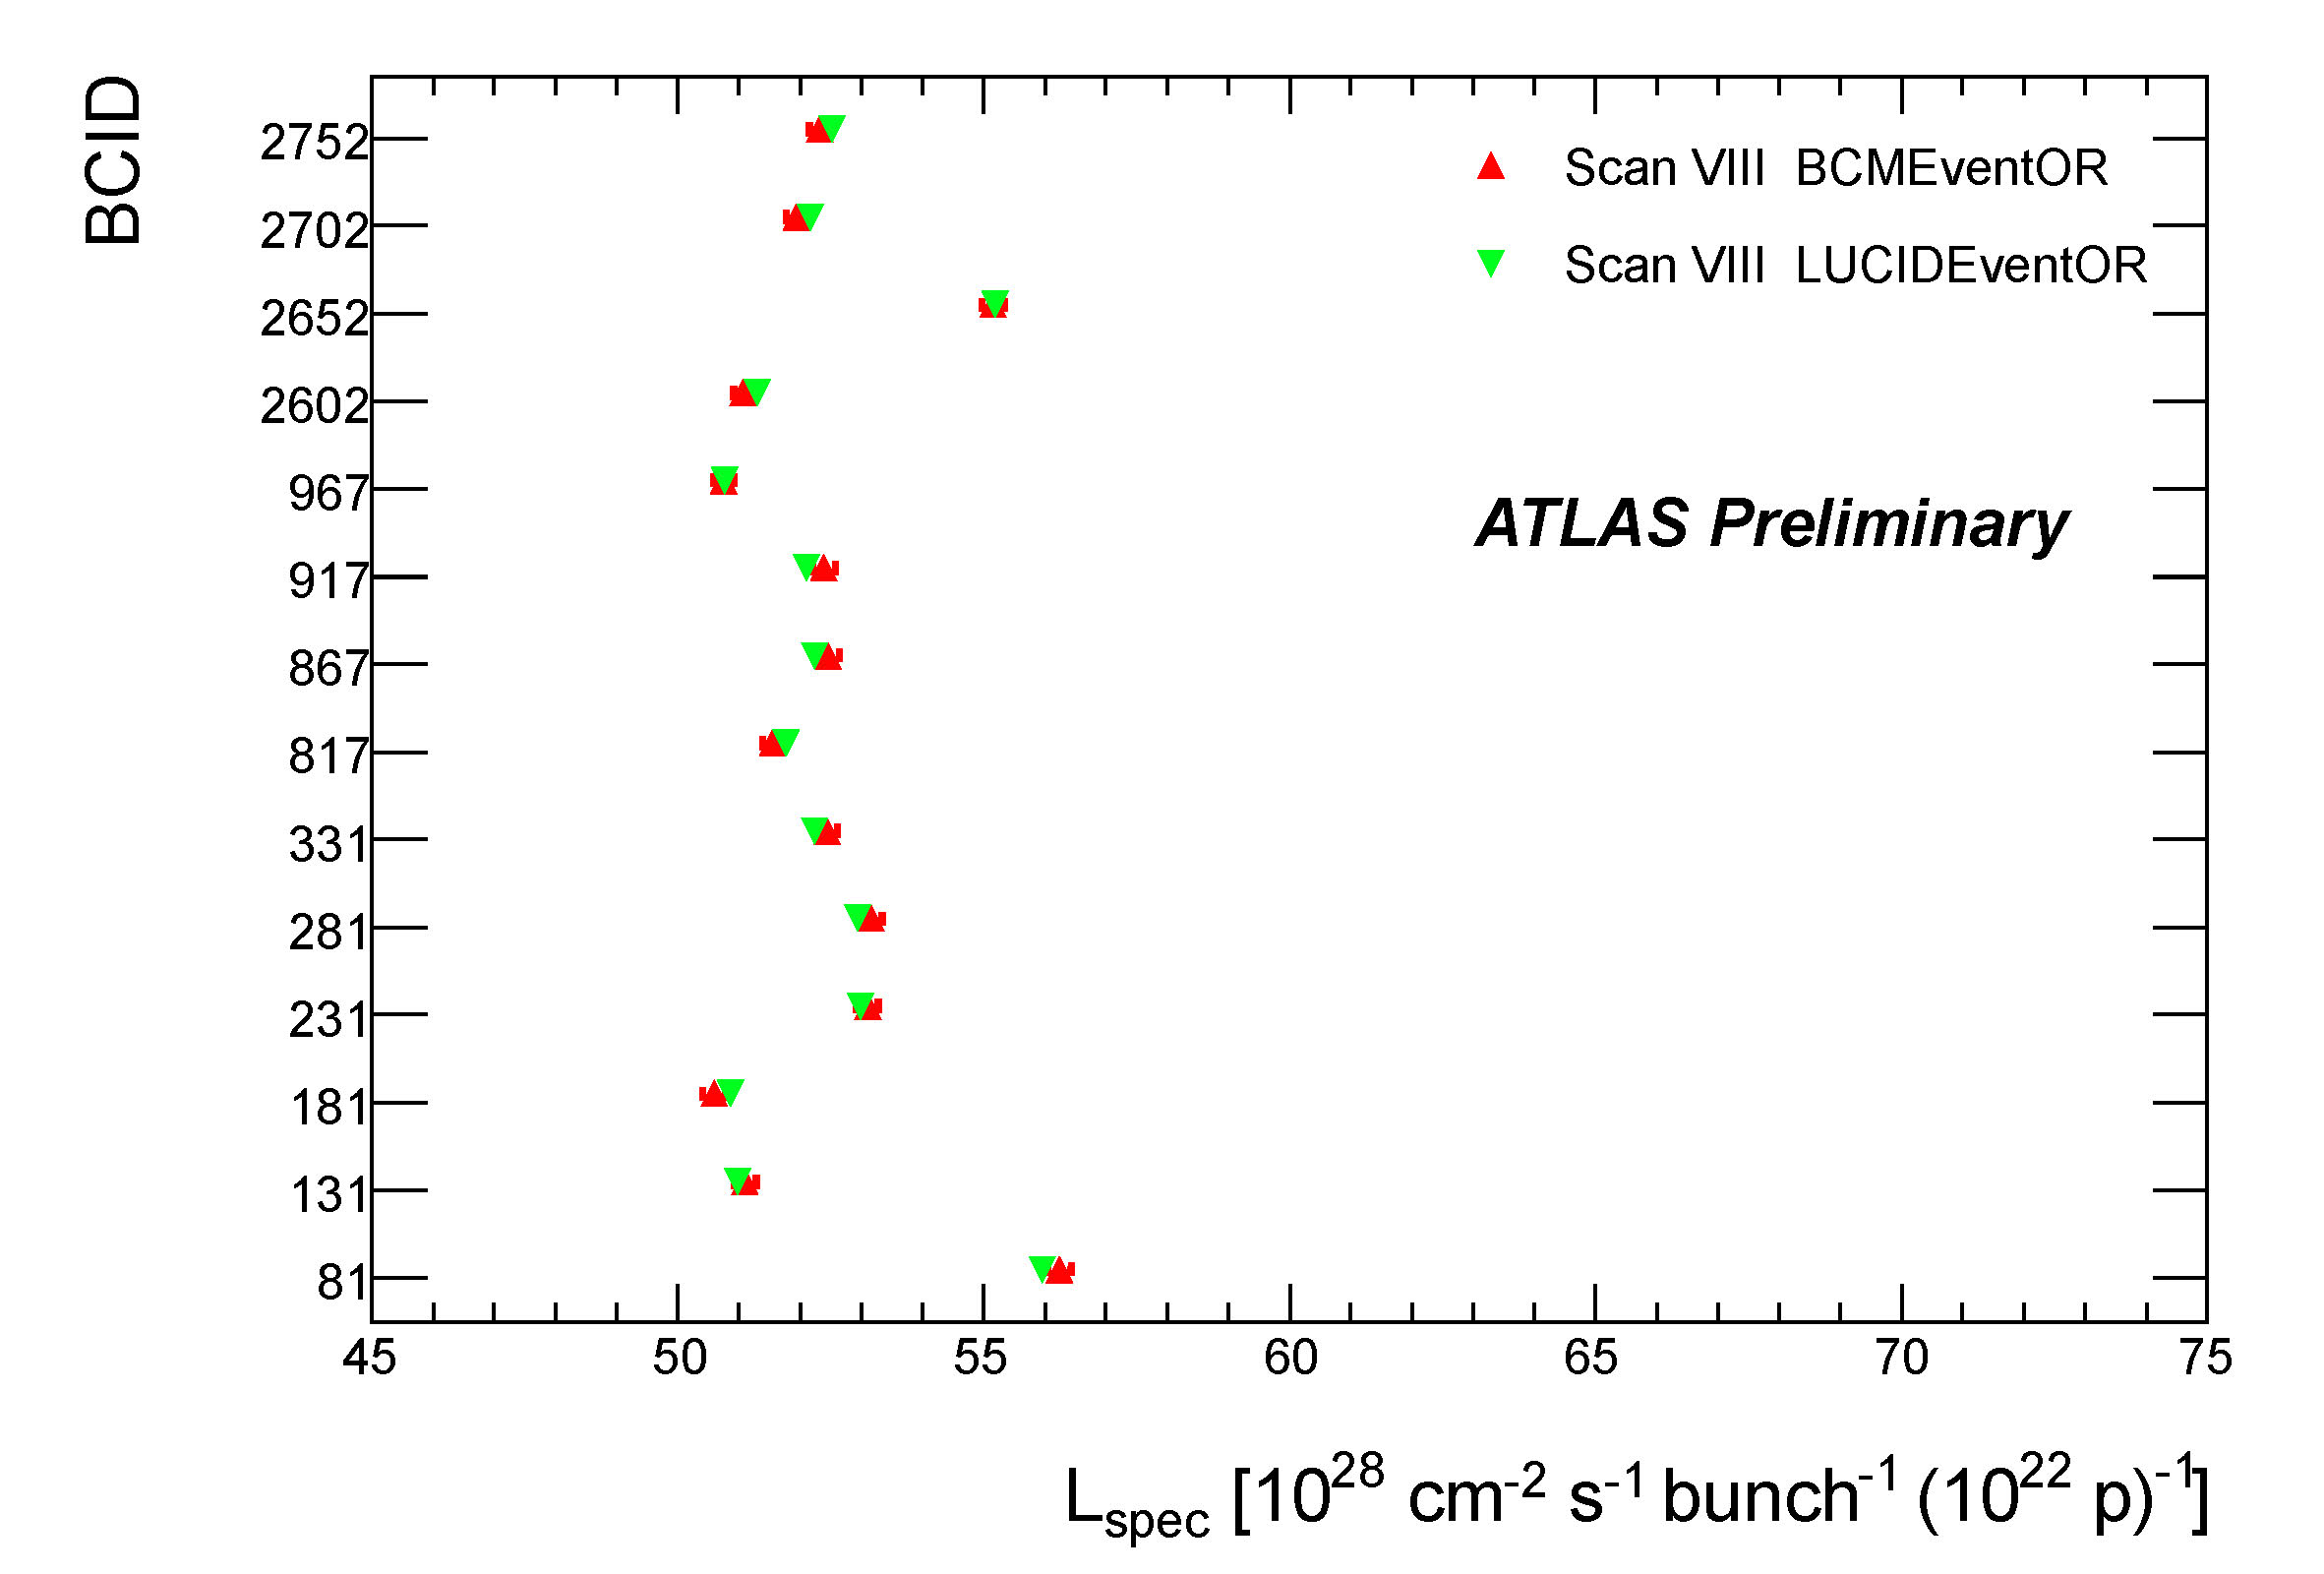 https://atlas.web.cern.ch/Atlas/GROUPS/DATAPREPARATION/PublicPlots/2011/Luminosity/ORLspecVsLUCIDVIII.jpg